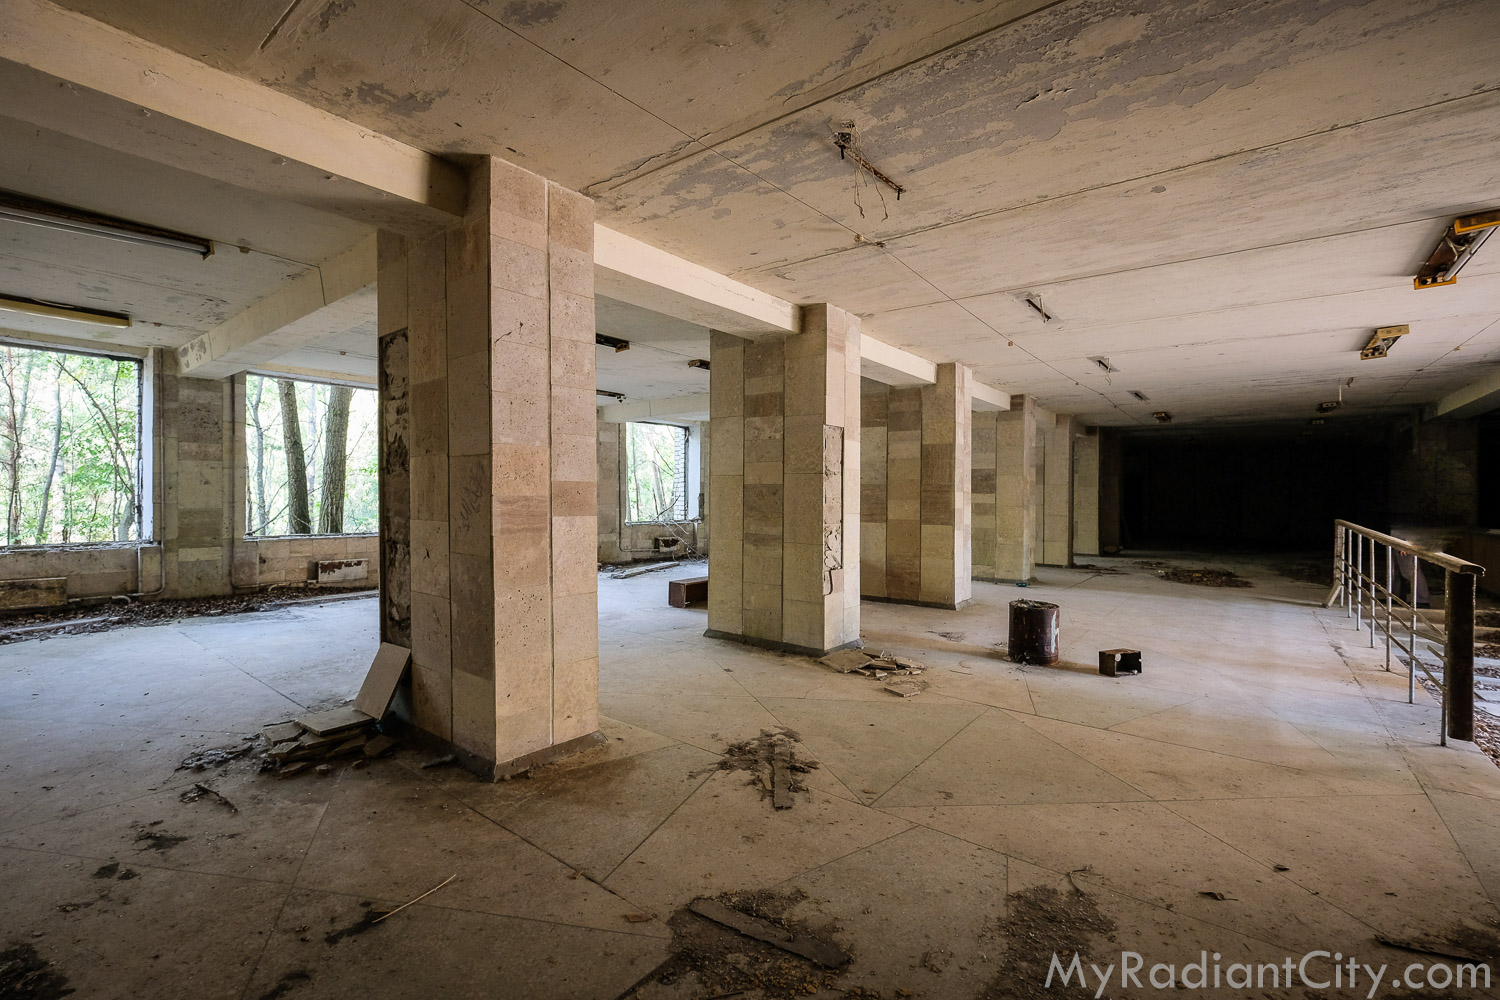 inside; probably the concession area